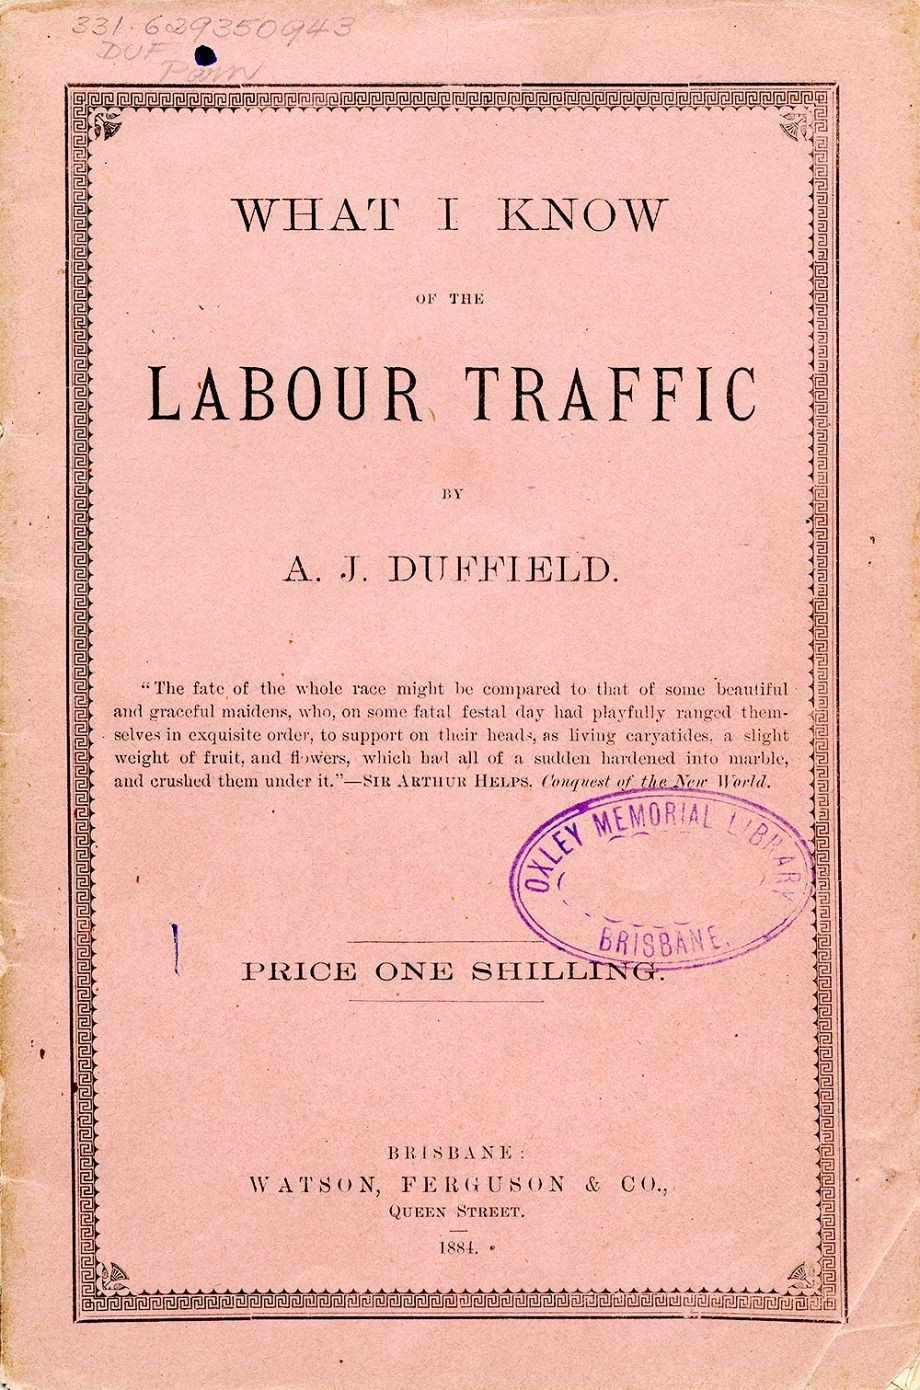 1884 What I know of the Labour Traffic by AJ Duffield Brisbane  Watson Ferguson  Co 1884